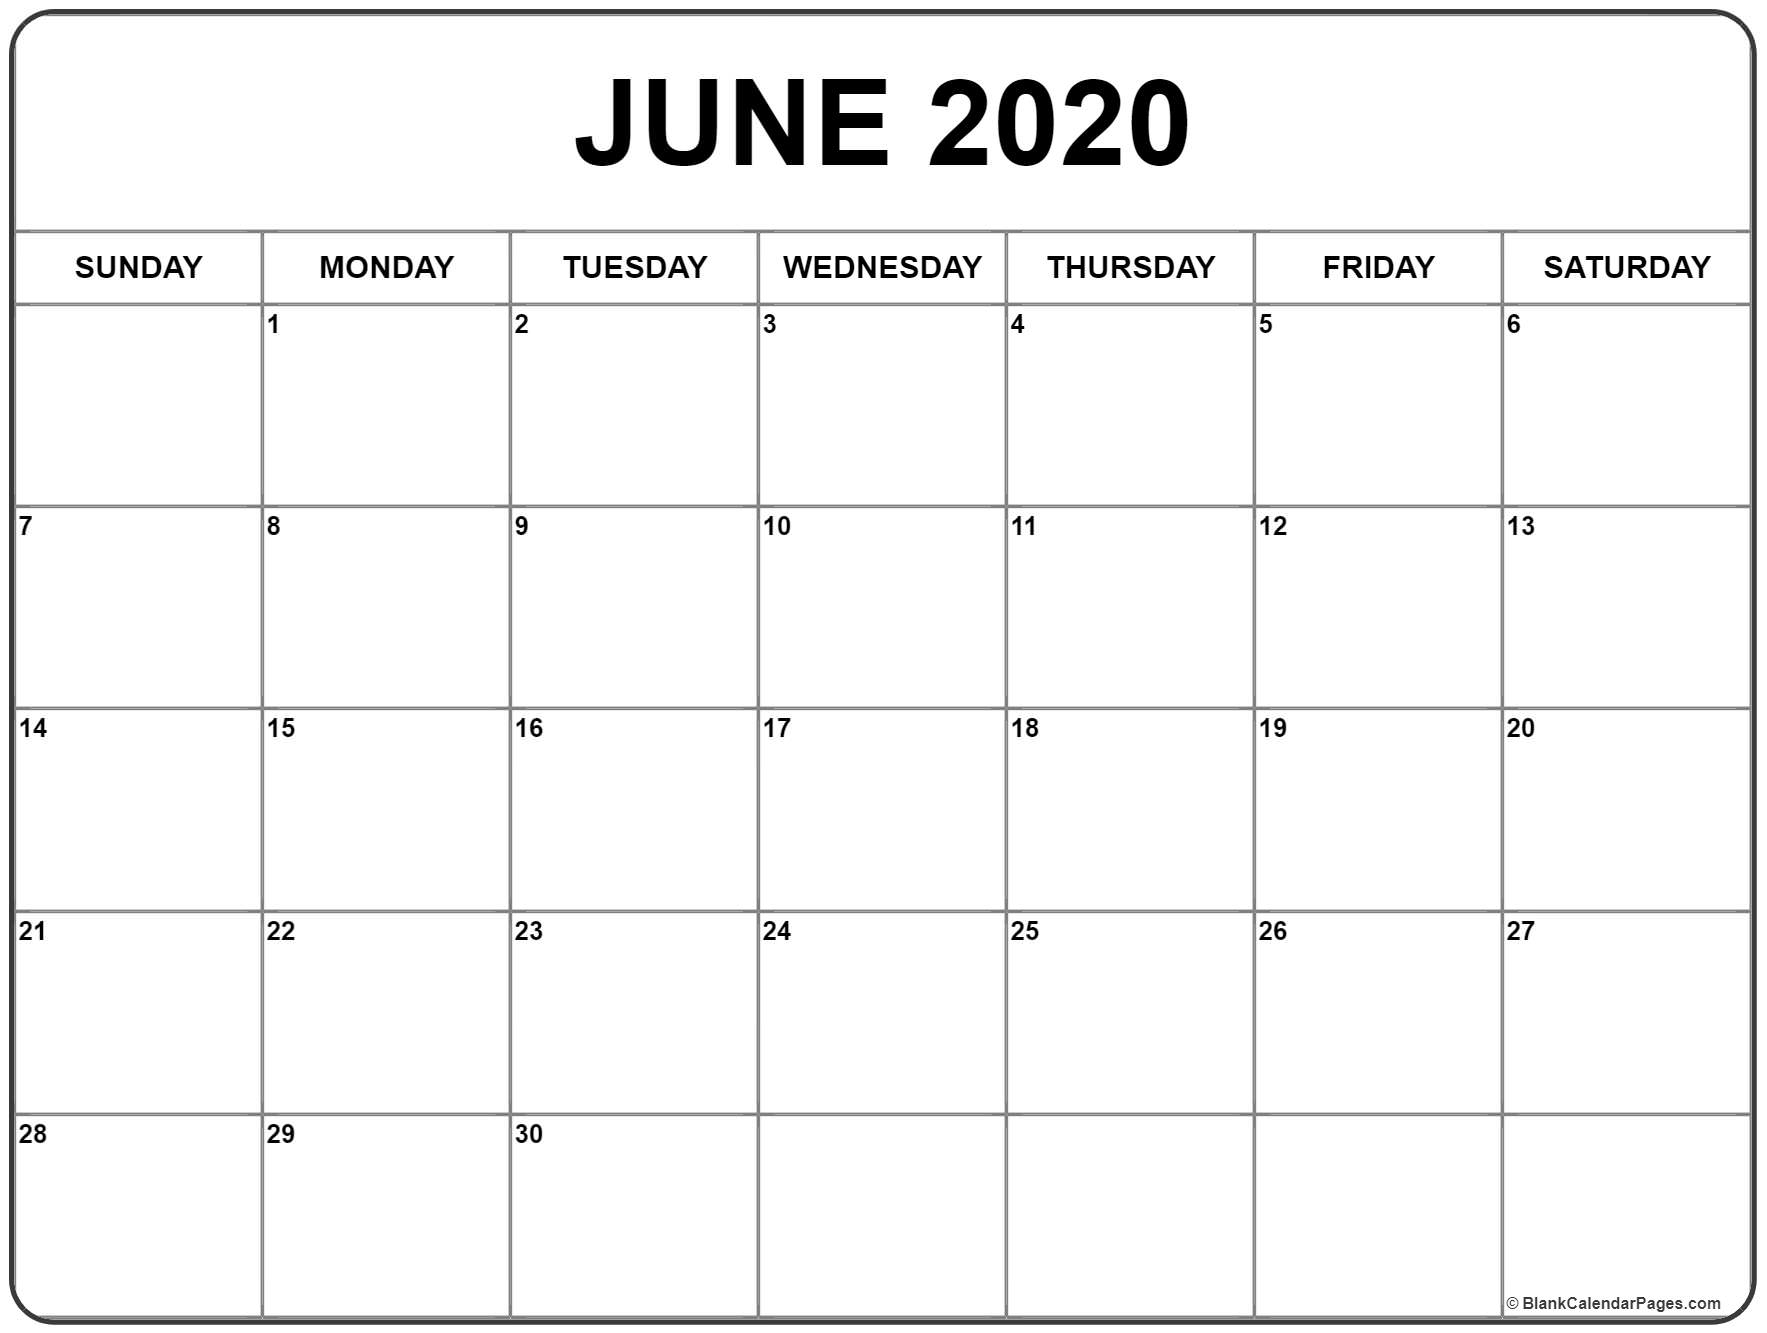 June 2020 Calendar | Free Printable Monthly Calendars in 2020 Calander To Write On